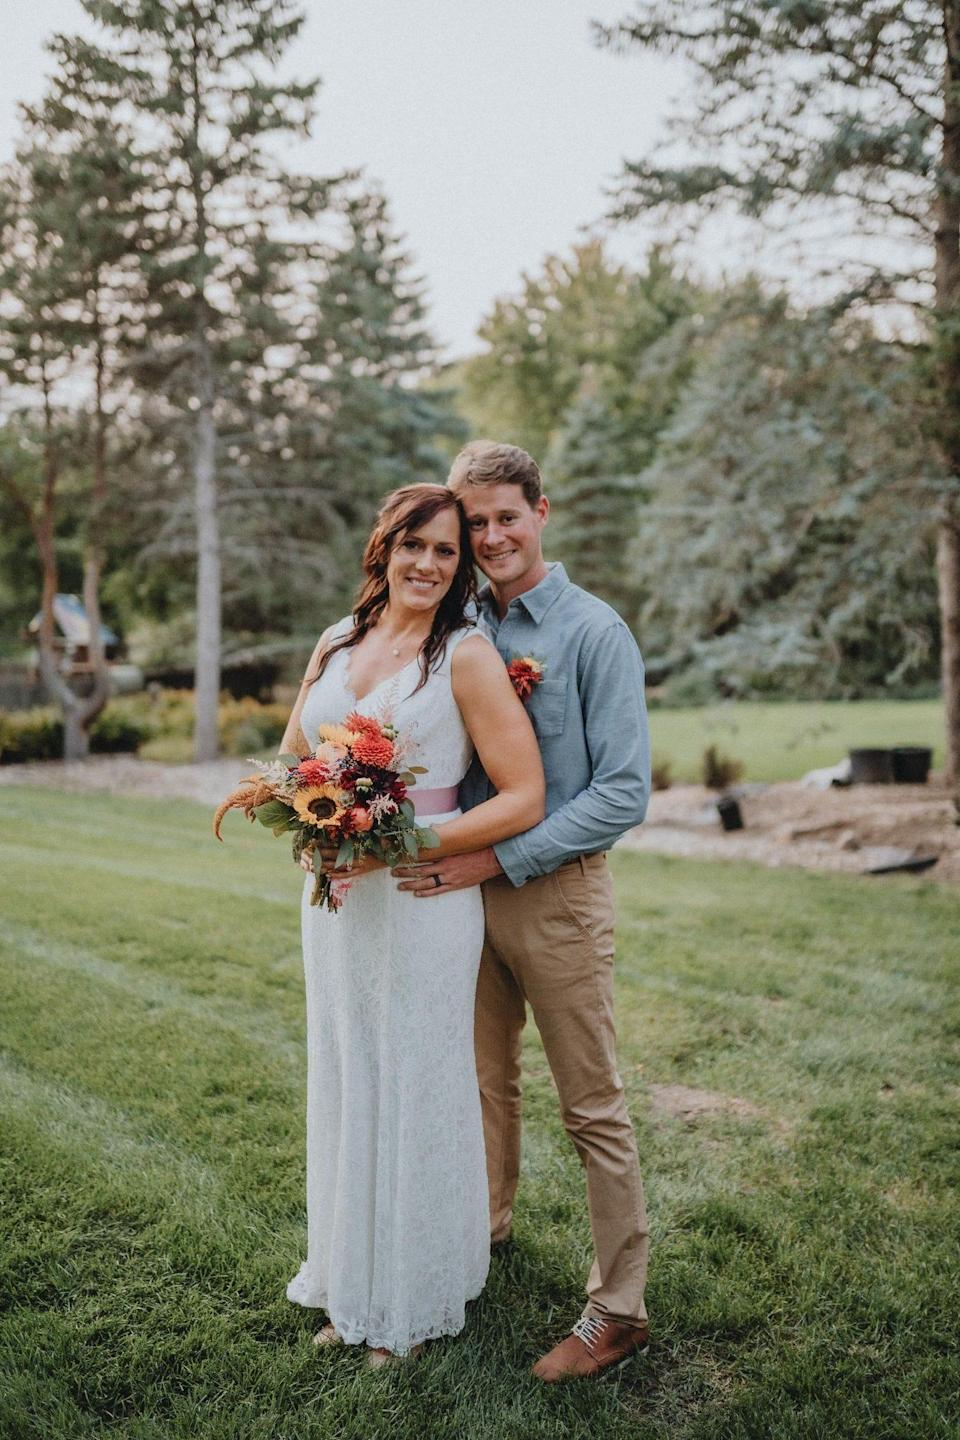 Tiaan and Samantha Treurnicht pose for a photo after getting married on Thursday September 9, 2021.